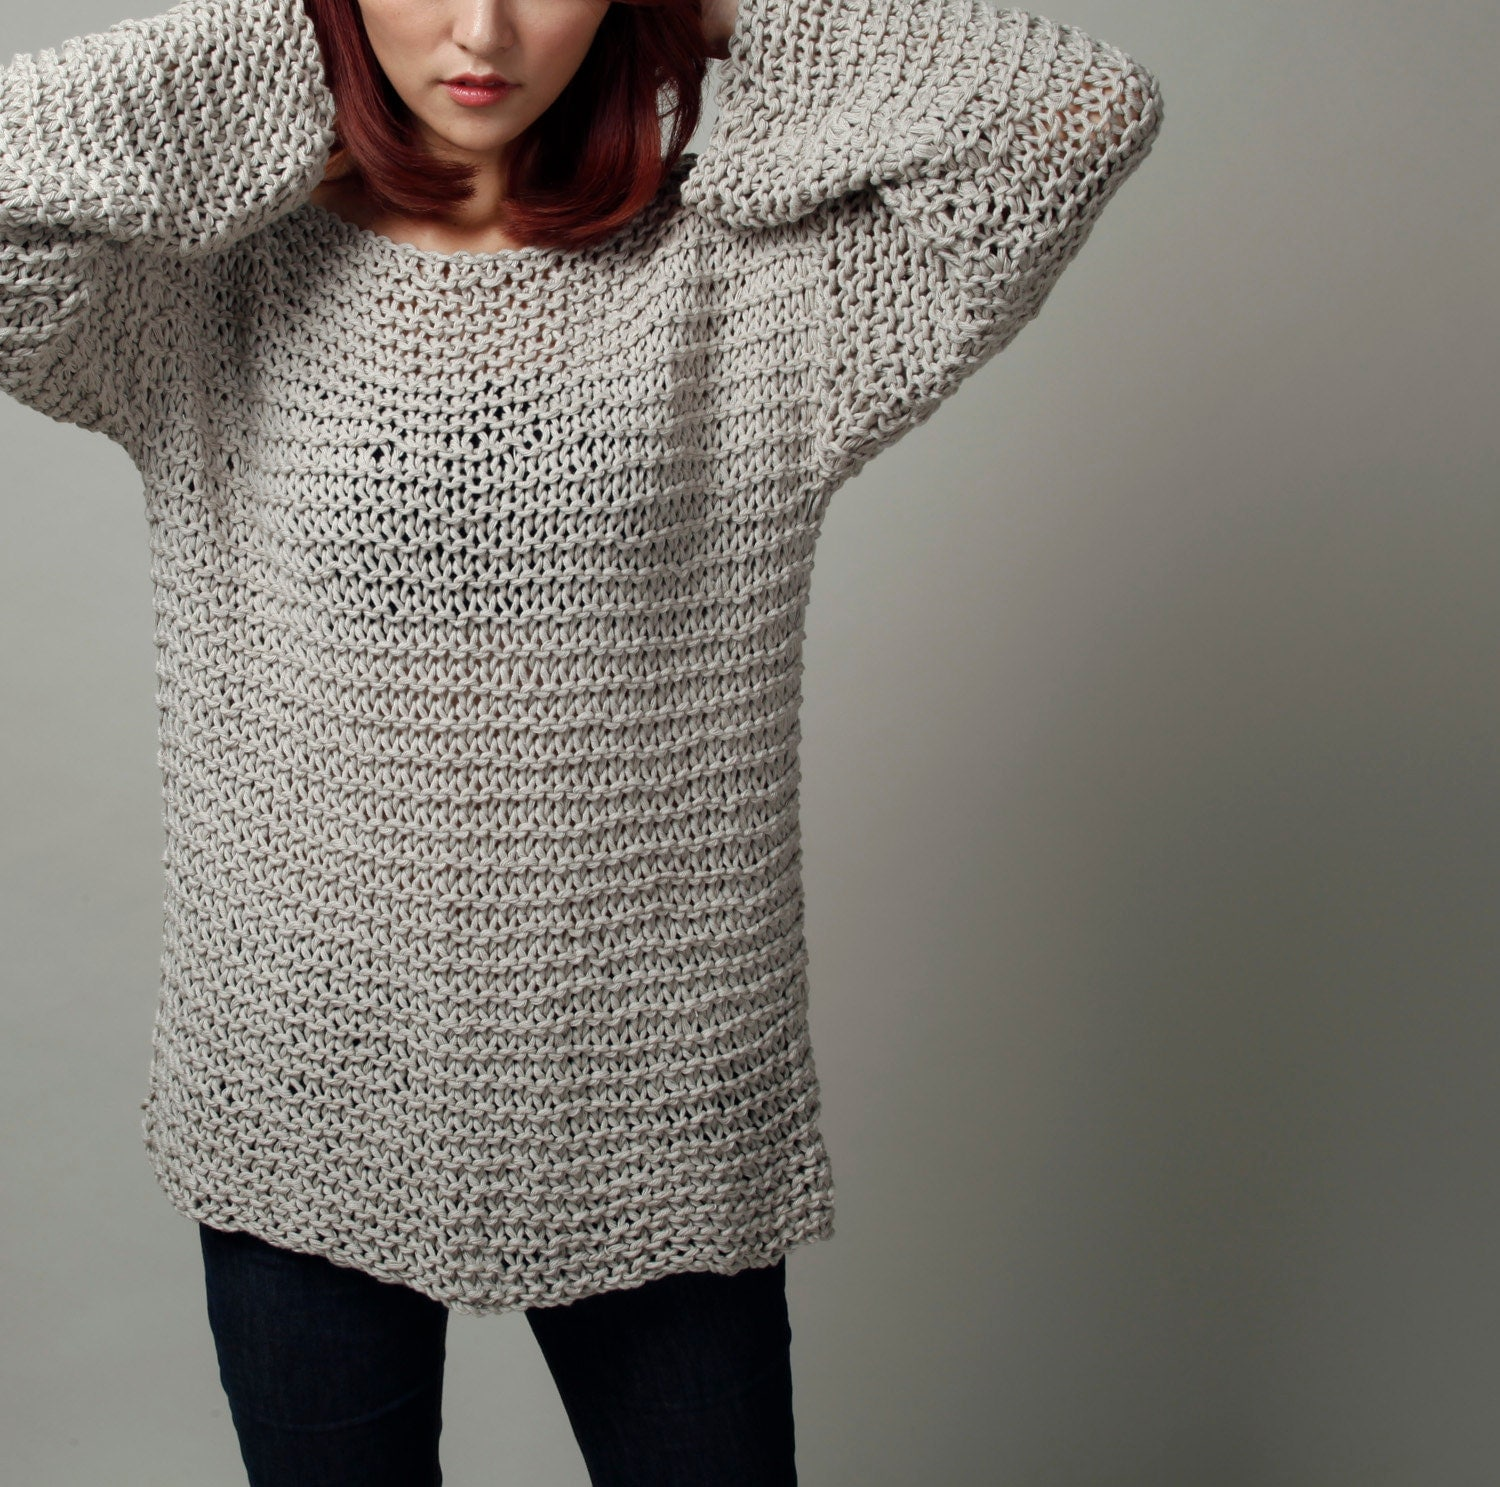 Tips For Knitting Your First Sweater : Simple is the best hand knitted sweater eco cotton oversized